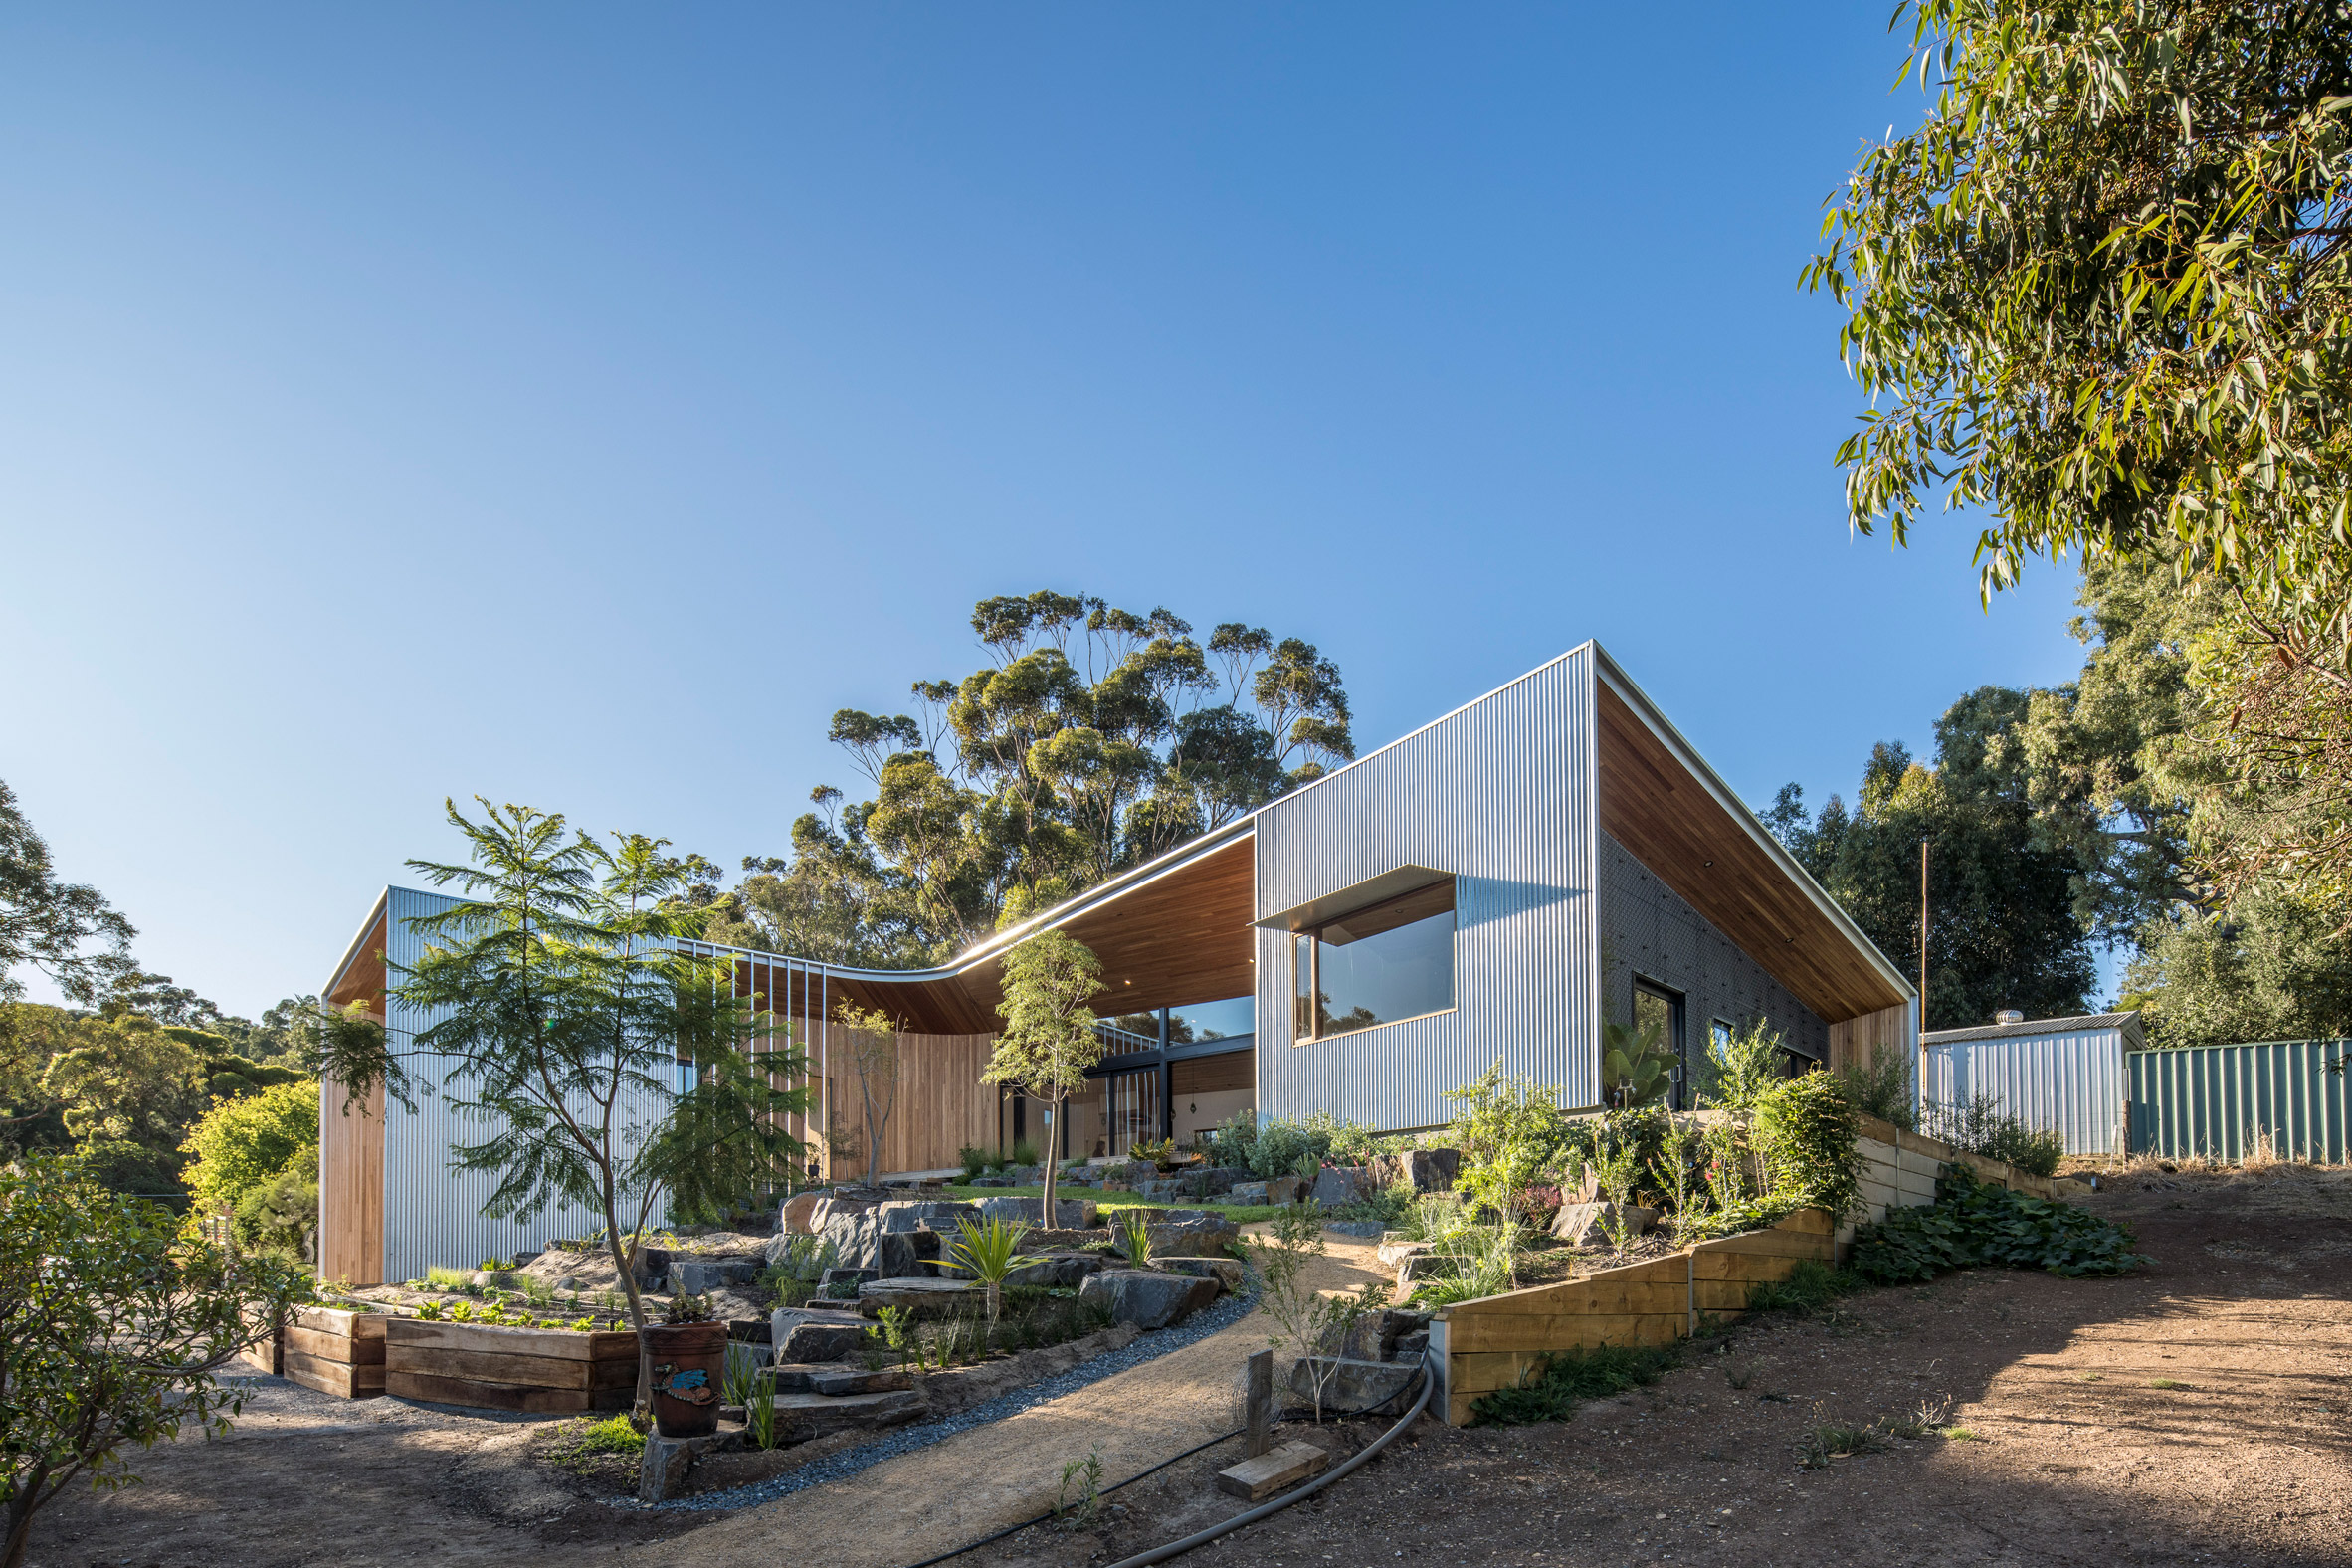 Exterior and garden of Willunga House by Reuben French-Kennedy